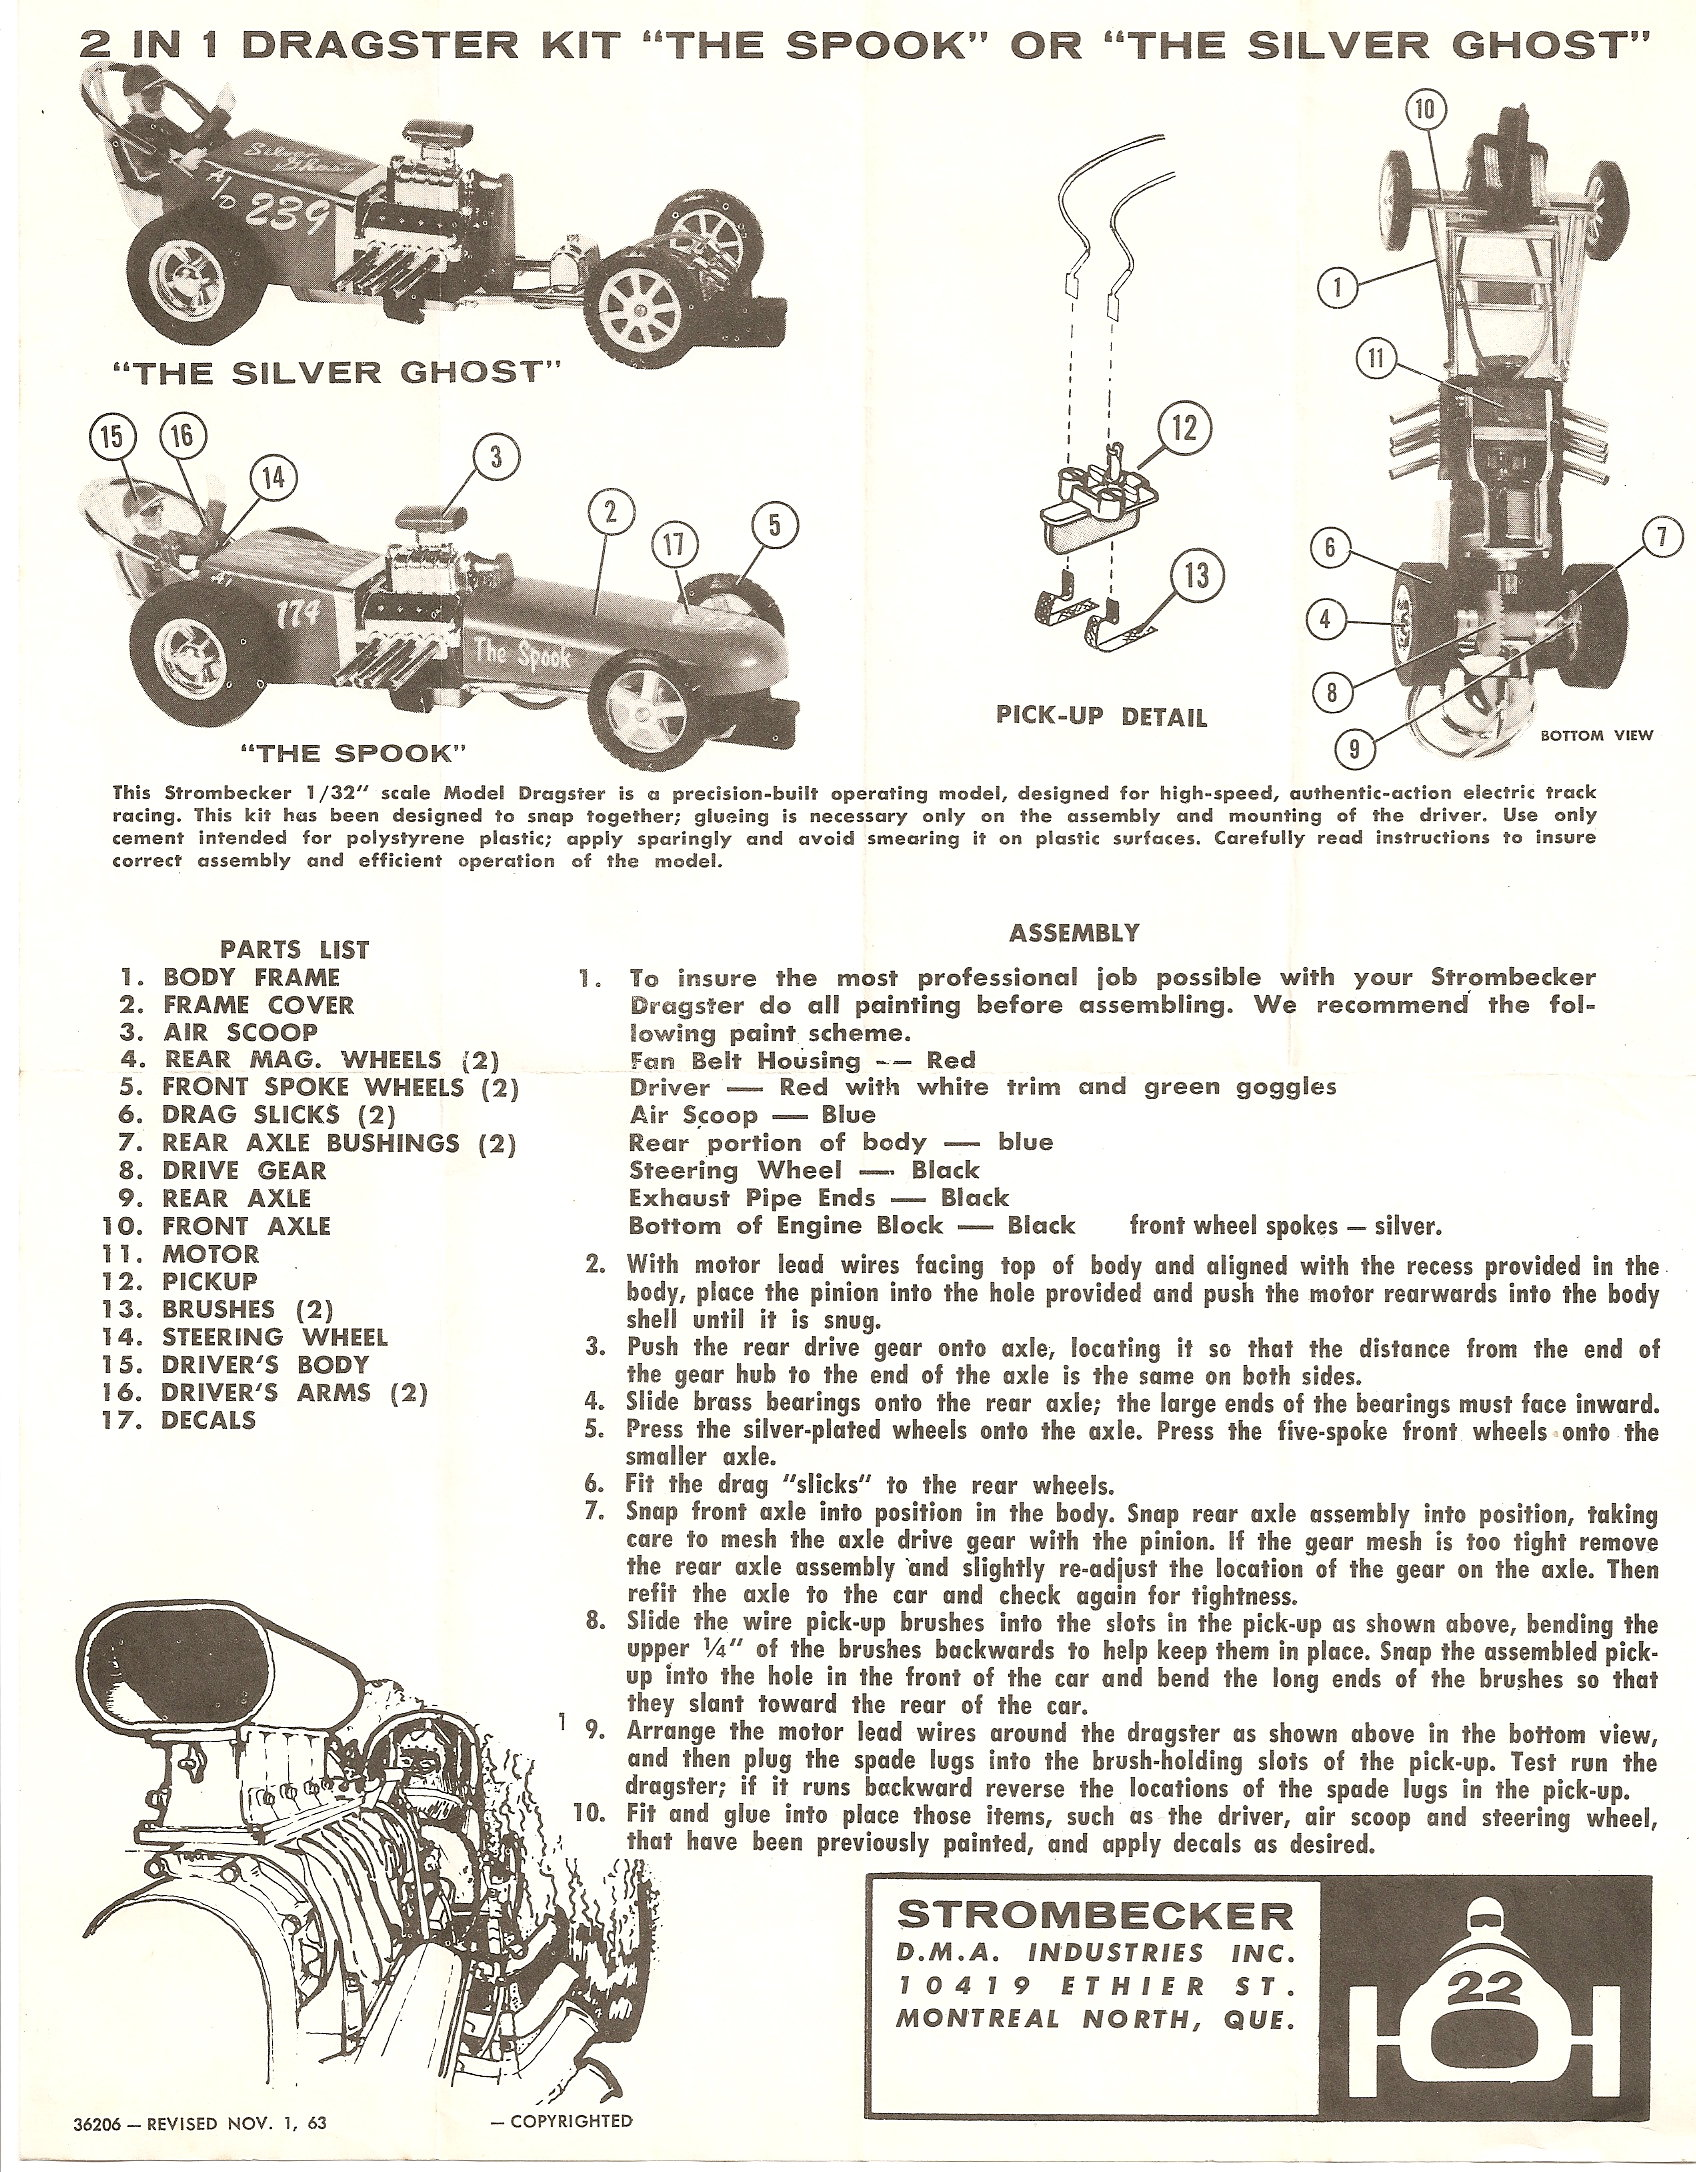 strombecker dragster instructionsScannedImage.jpg